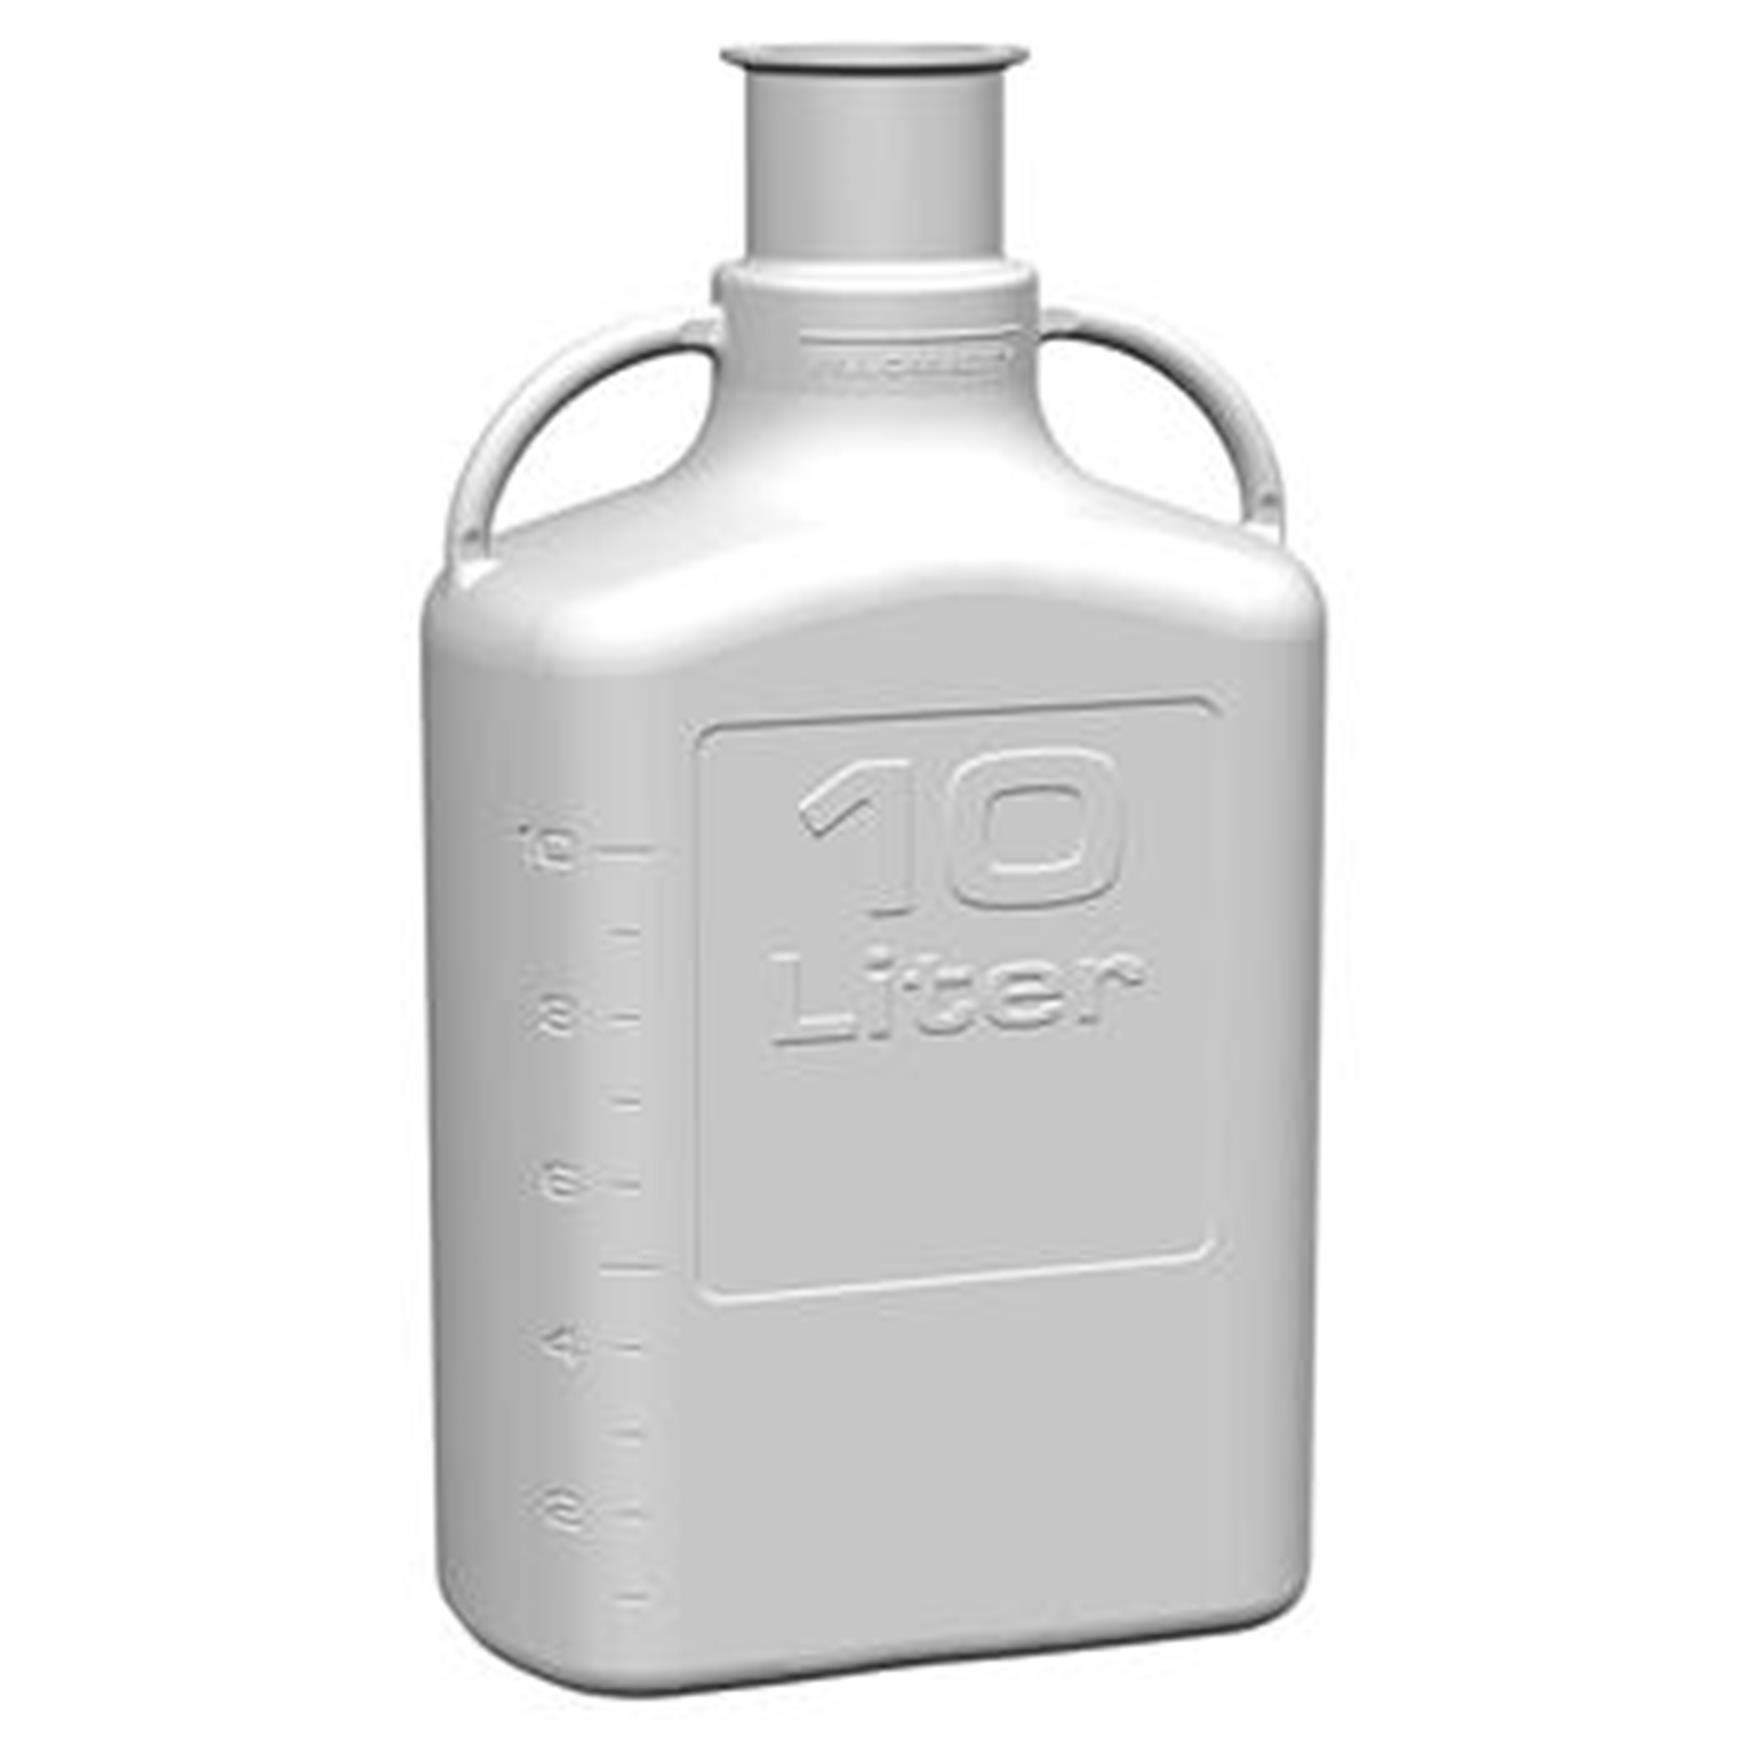 EZgrip 10L (2.5 Gal) Autoclavable Polypropylene (PP) Space Saving Carboy with Leakproof Spigot, 83mm (83B) VersaCap and 13L Max Capacity, Large Pinched Handles